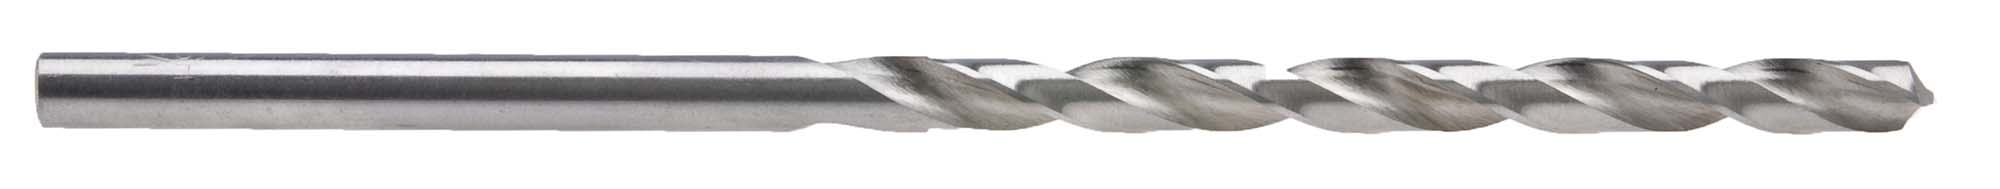 "23/32""  ""Taper Length"" Long Straight Shank Drill Bit, 9 1/2"" Overall Length, High Speed Steel"